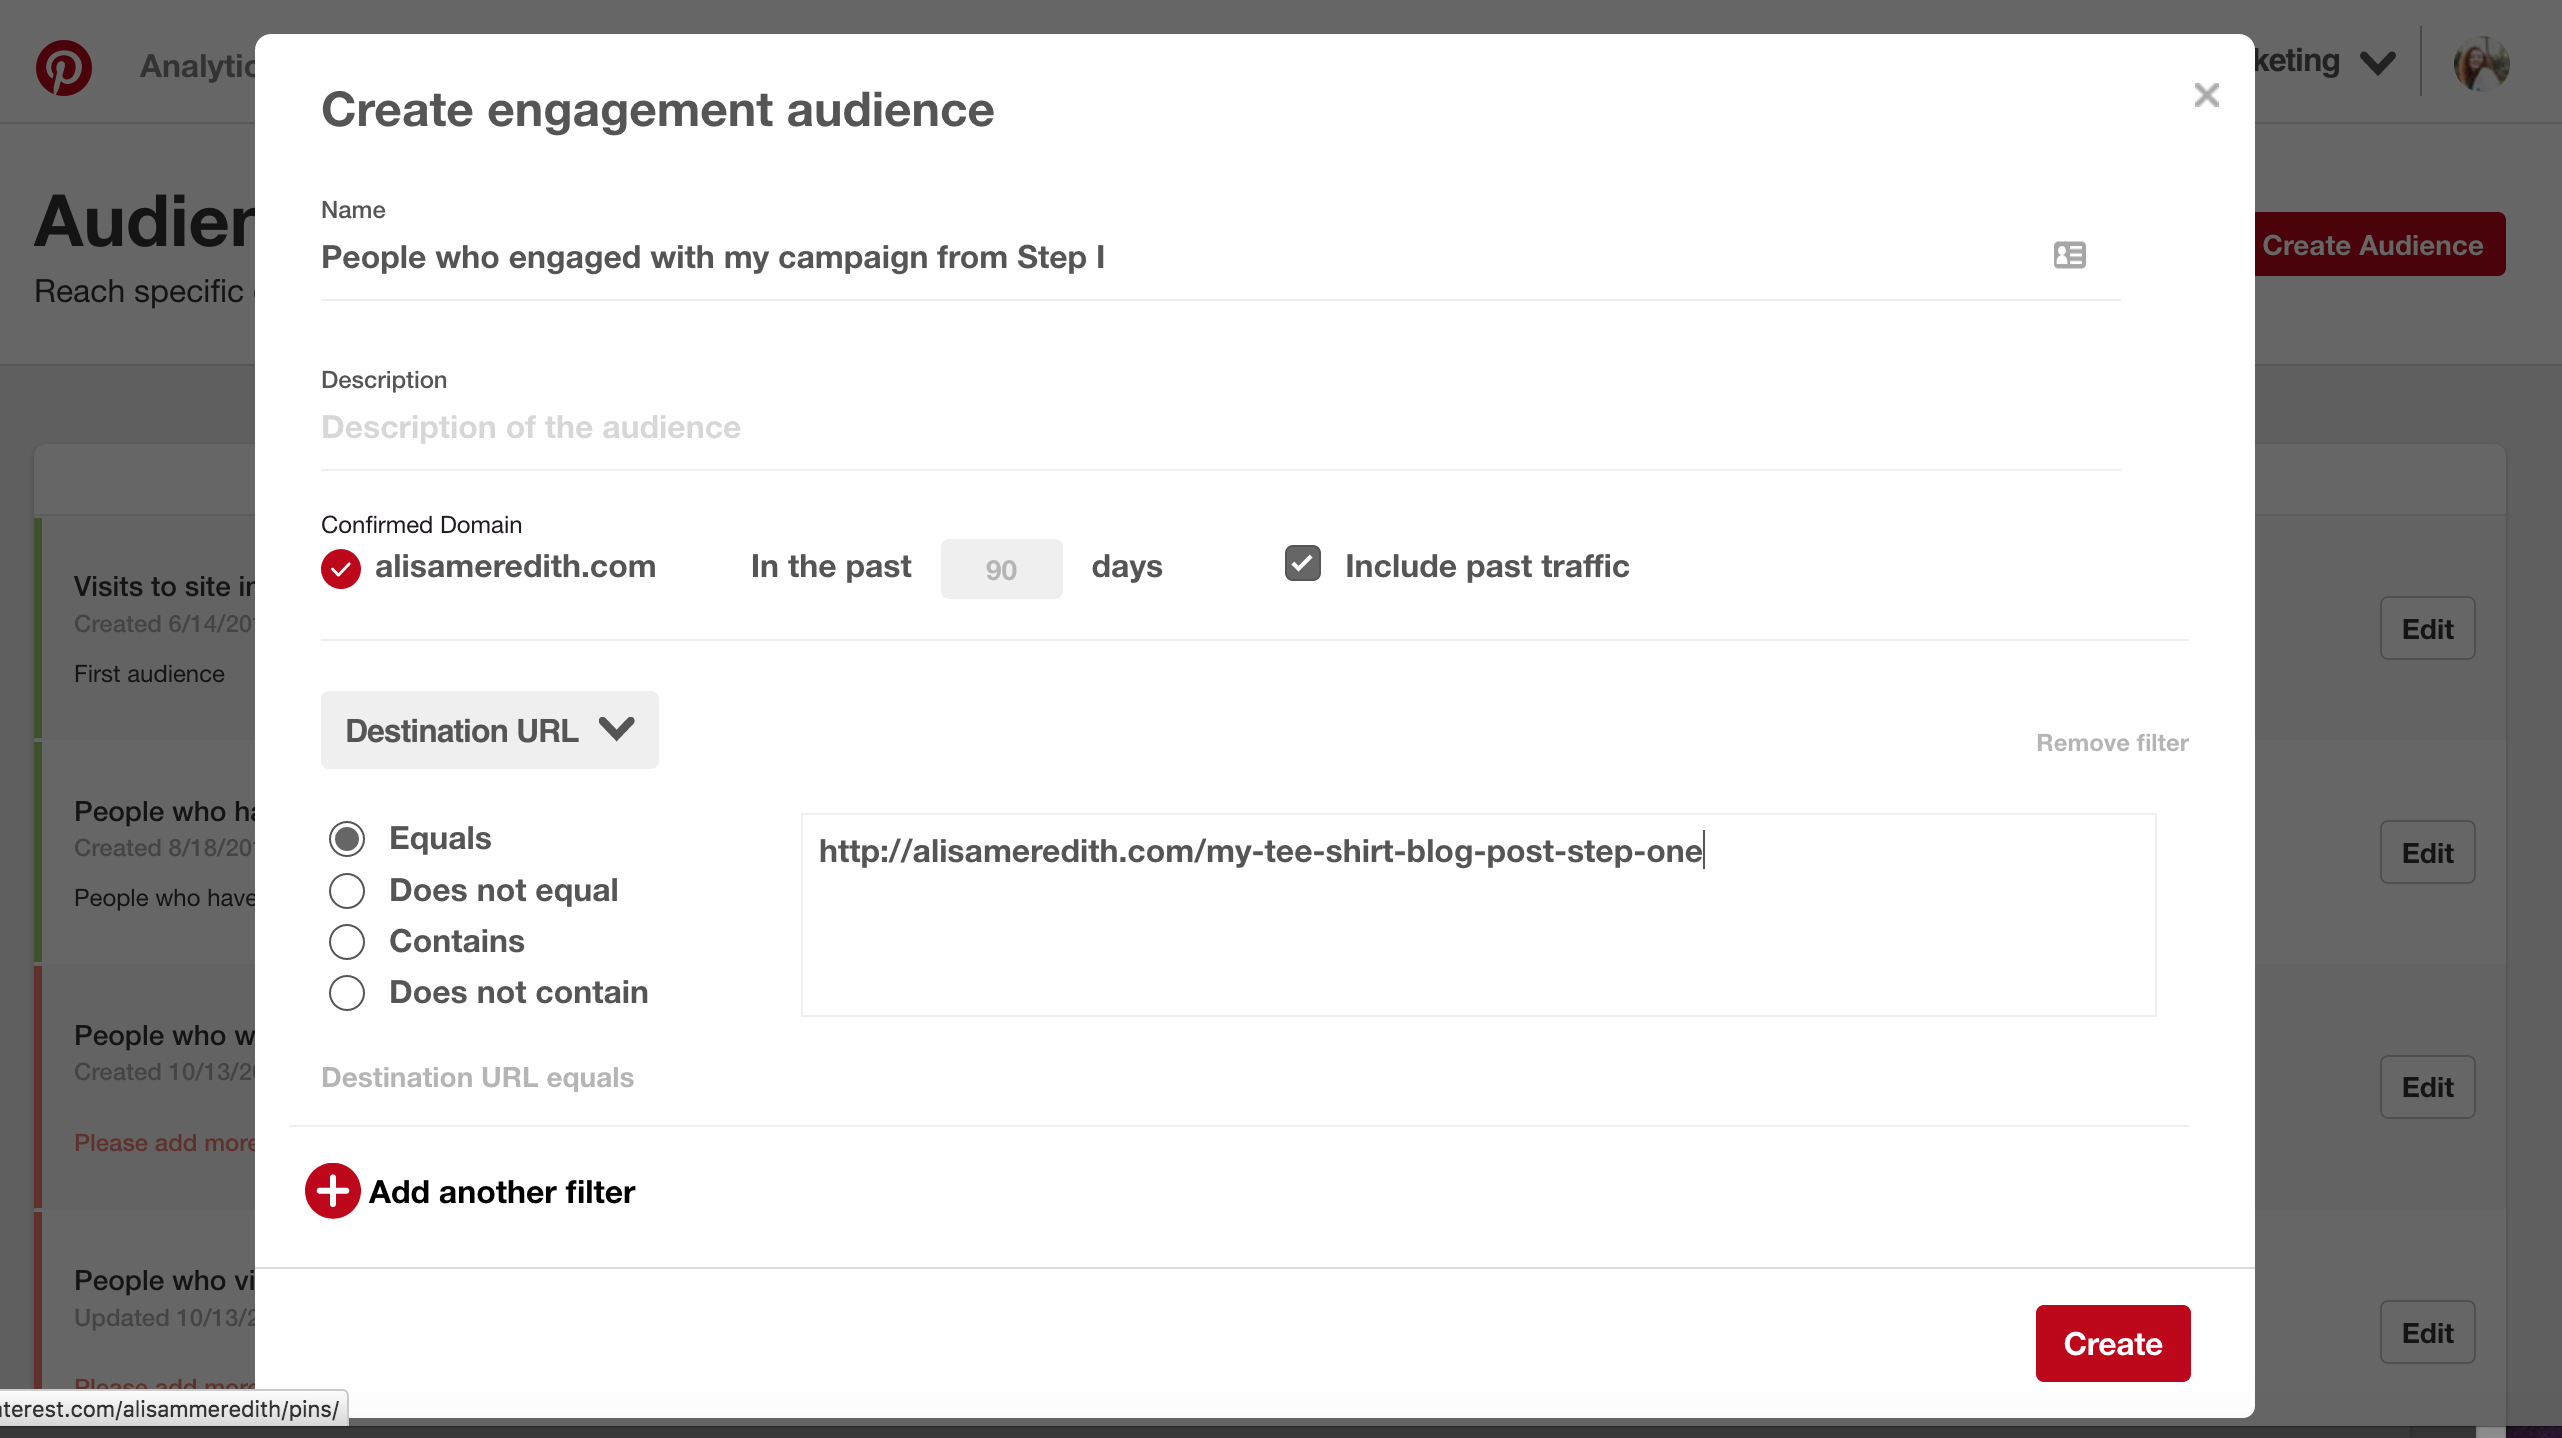 Create an engagement audience